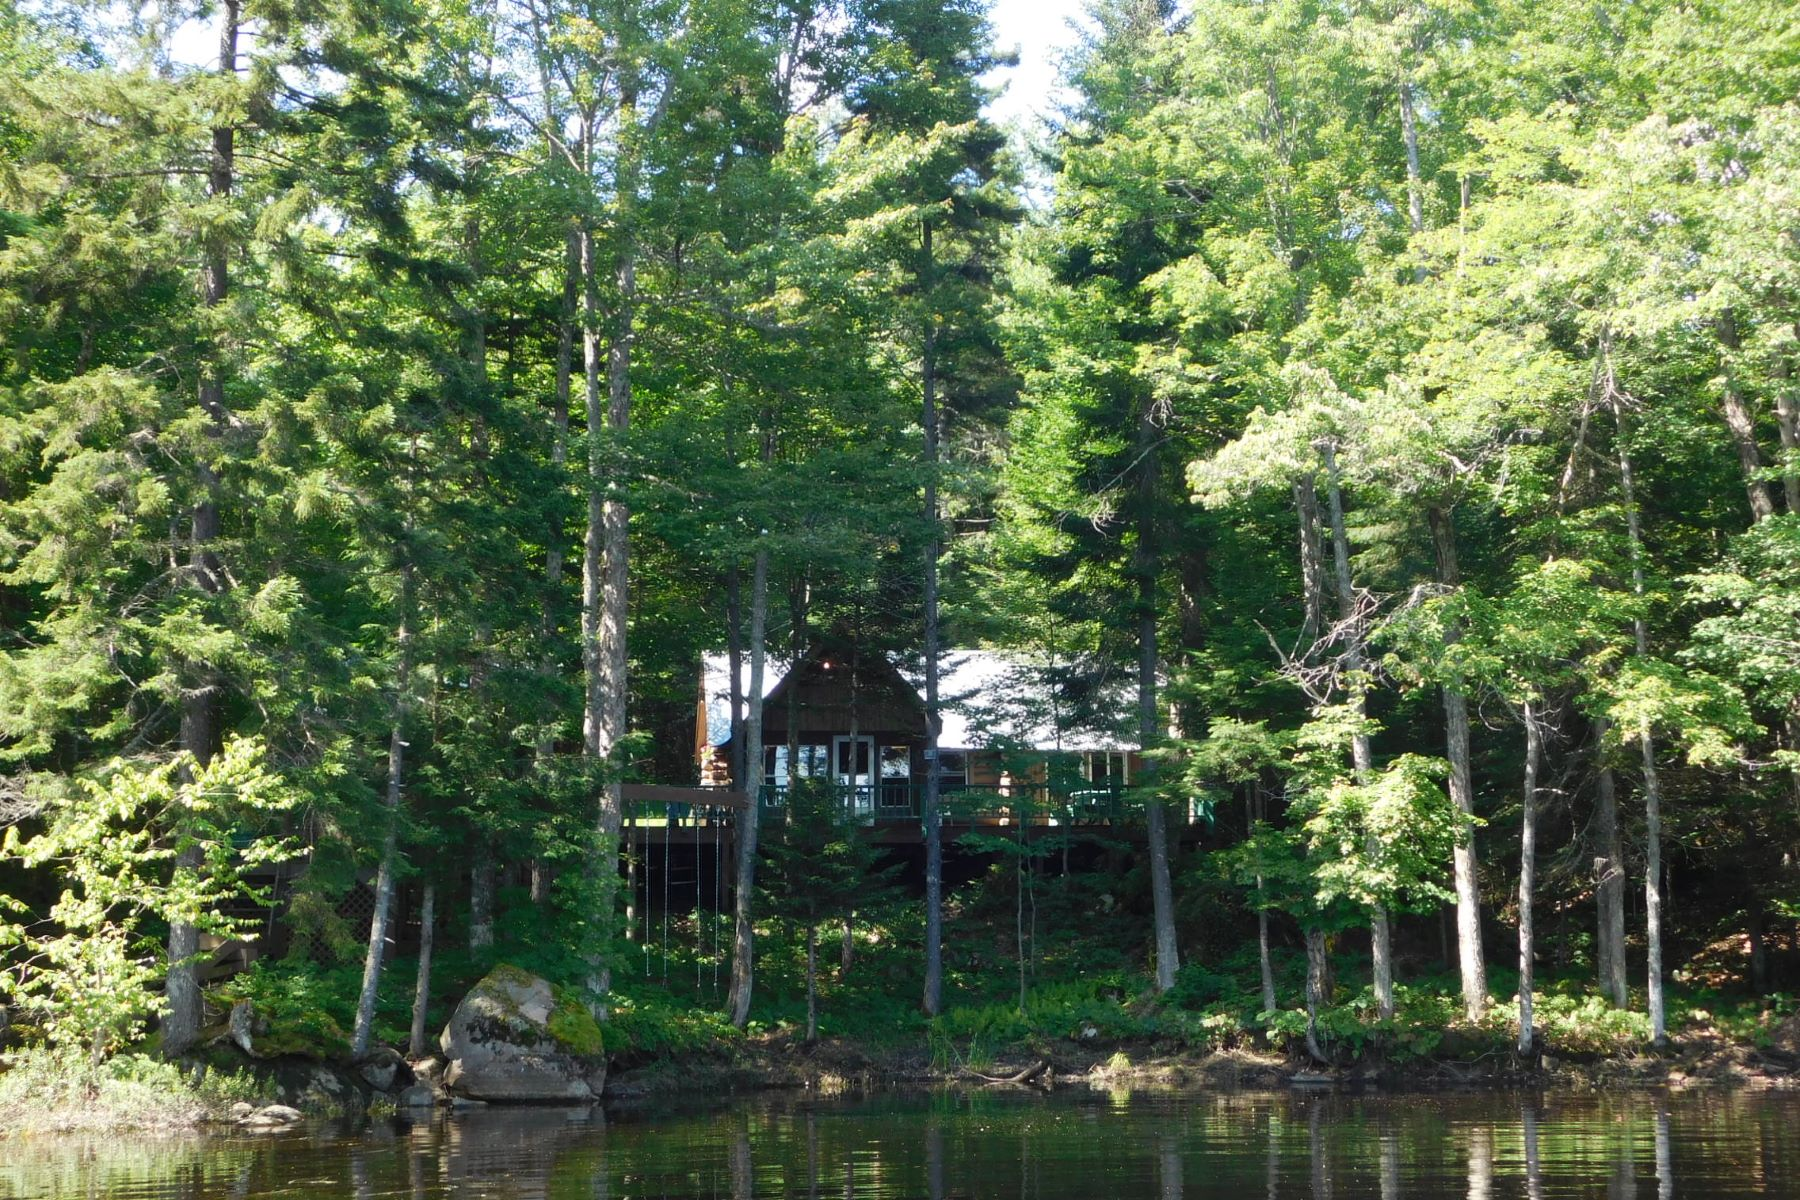 Maison unifamiliale pour l Vente à Secluded Cabin and 32 acres with unparalleled views of Stillwater Reservoir 3960 Big Moose Rd Big Moose, New York, 13331 États-Unis